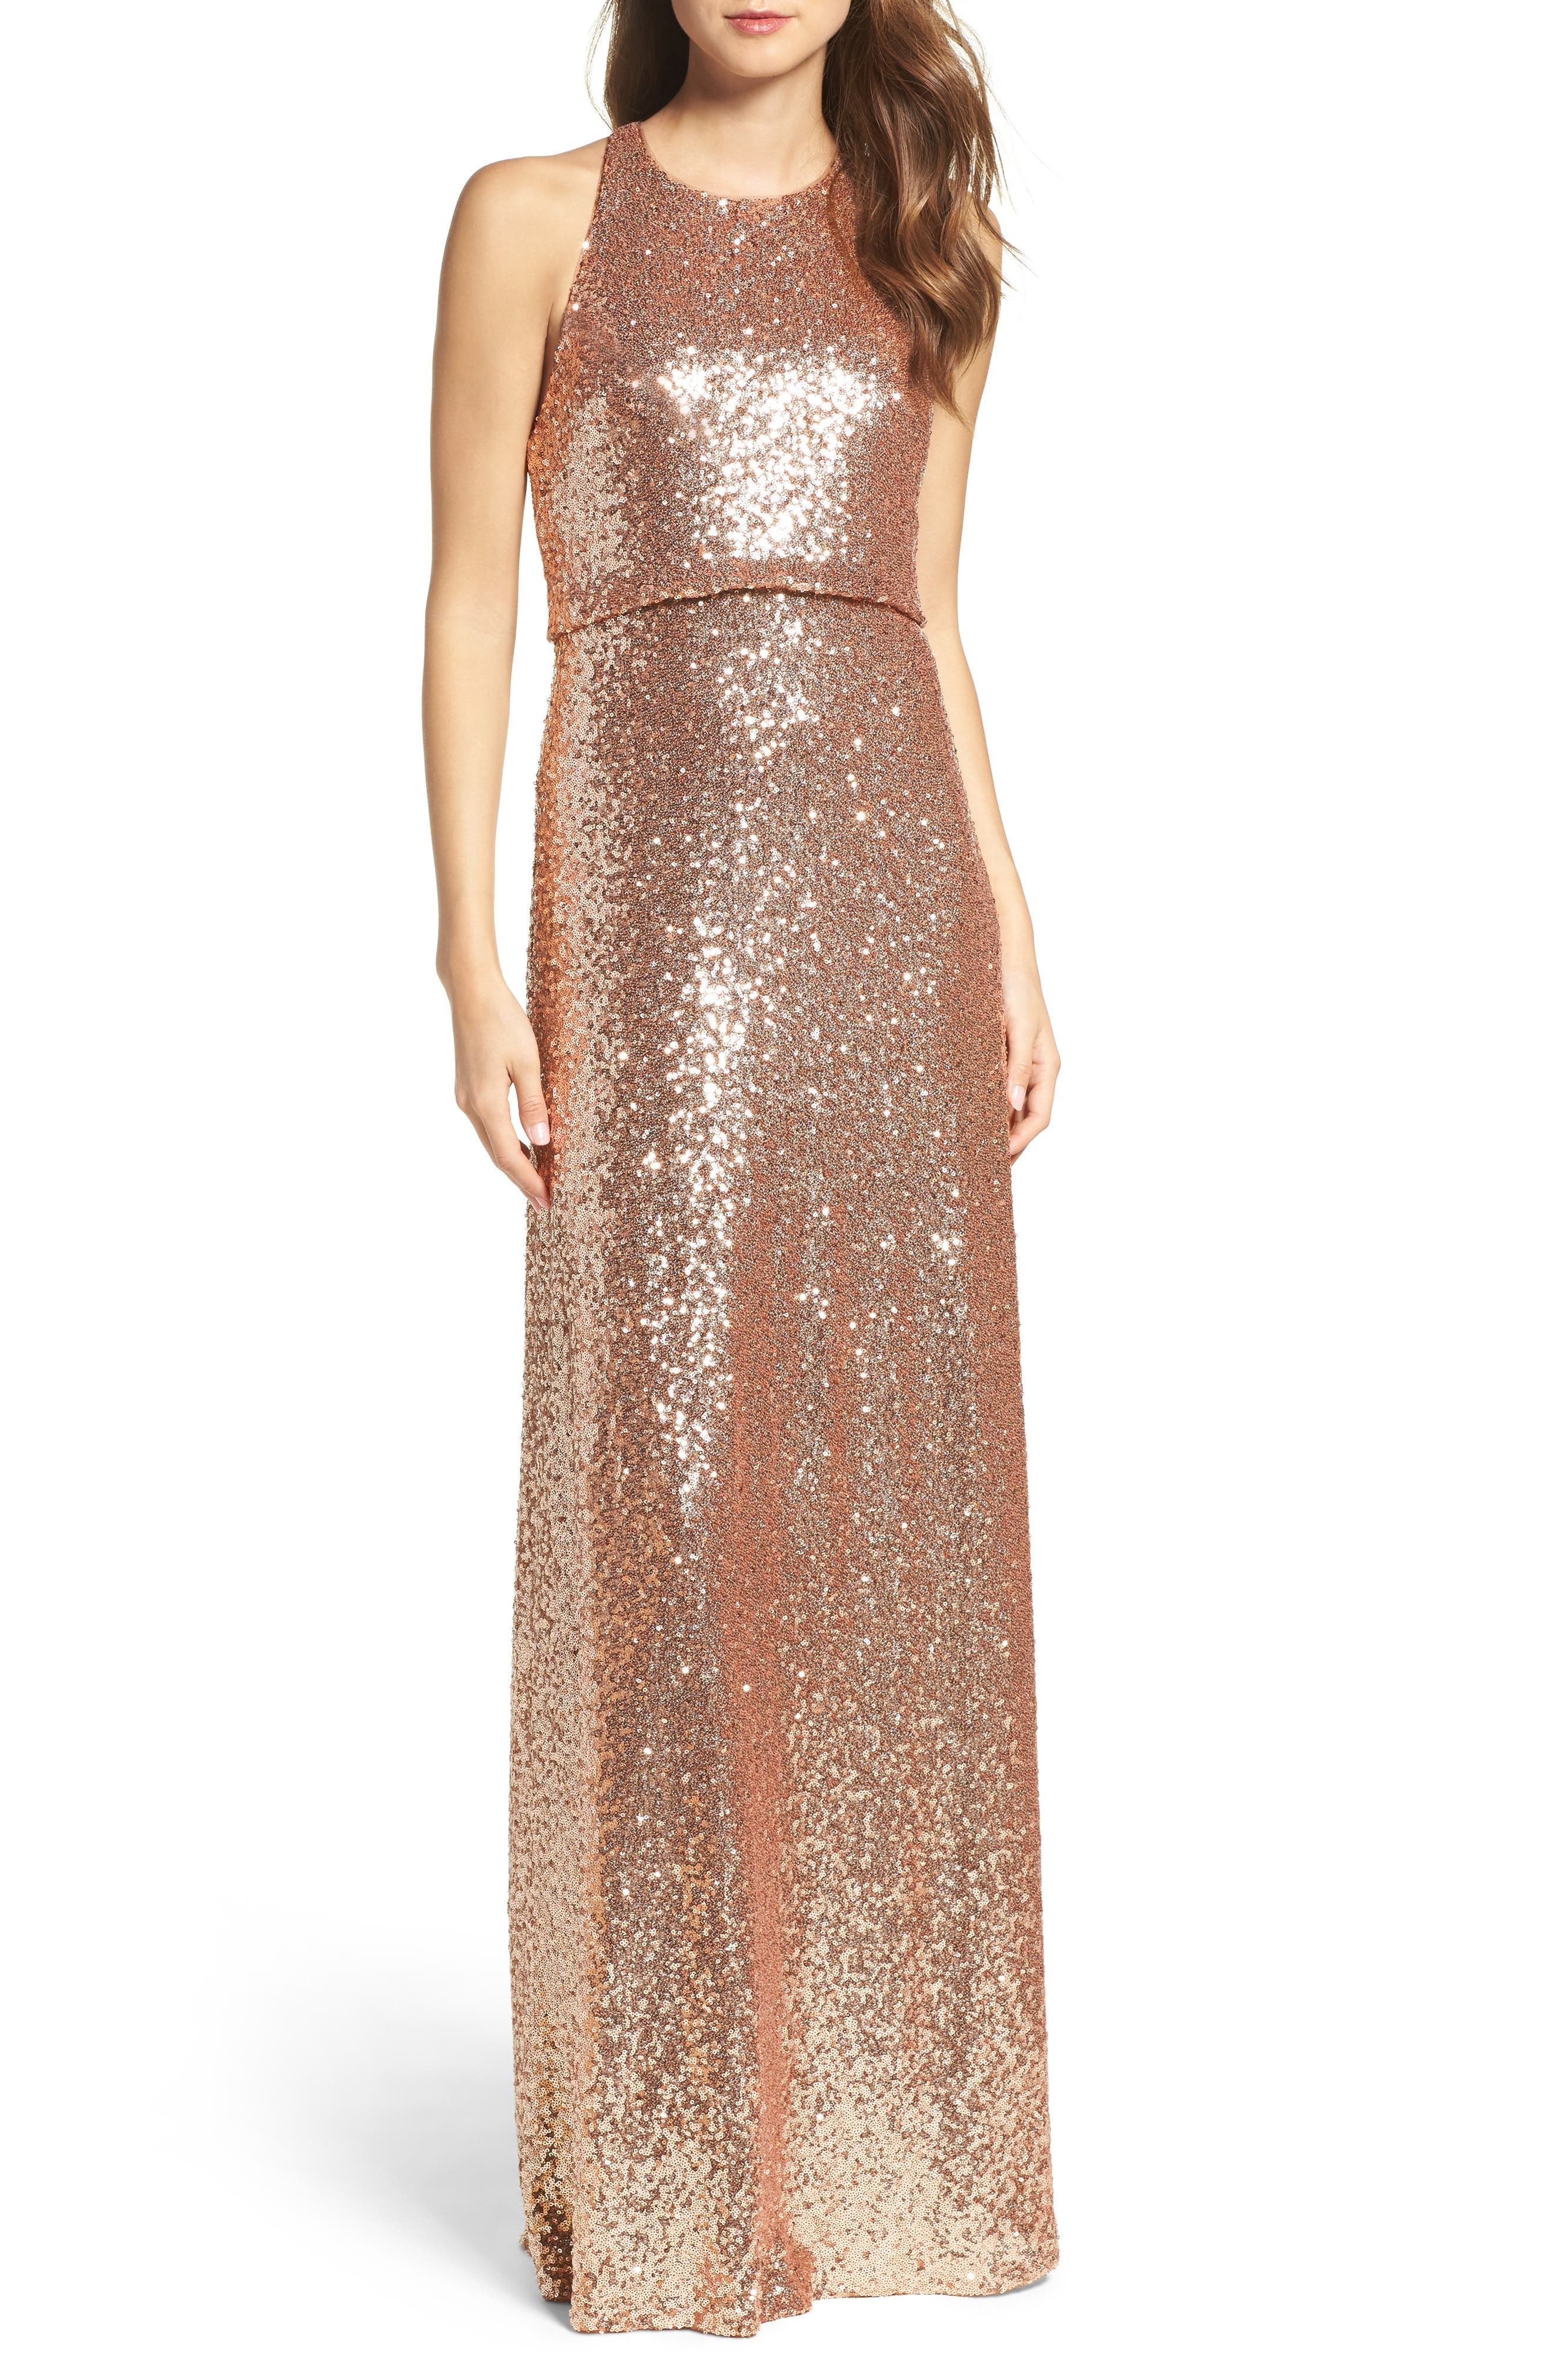 Main Image - Jenny Yoo Sloane Sequin Halter Gown